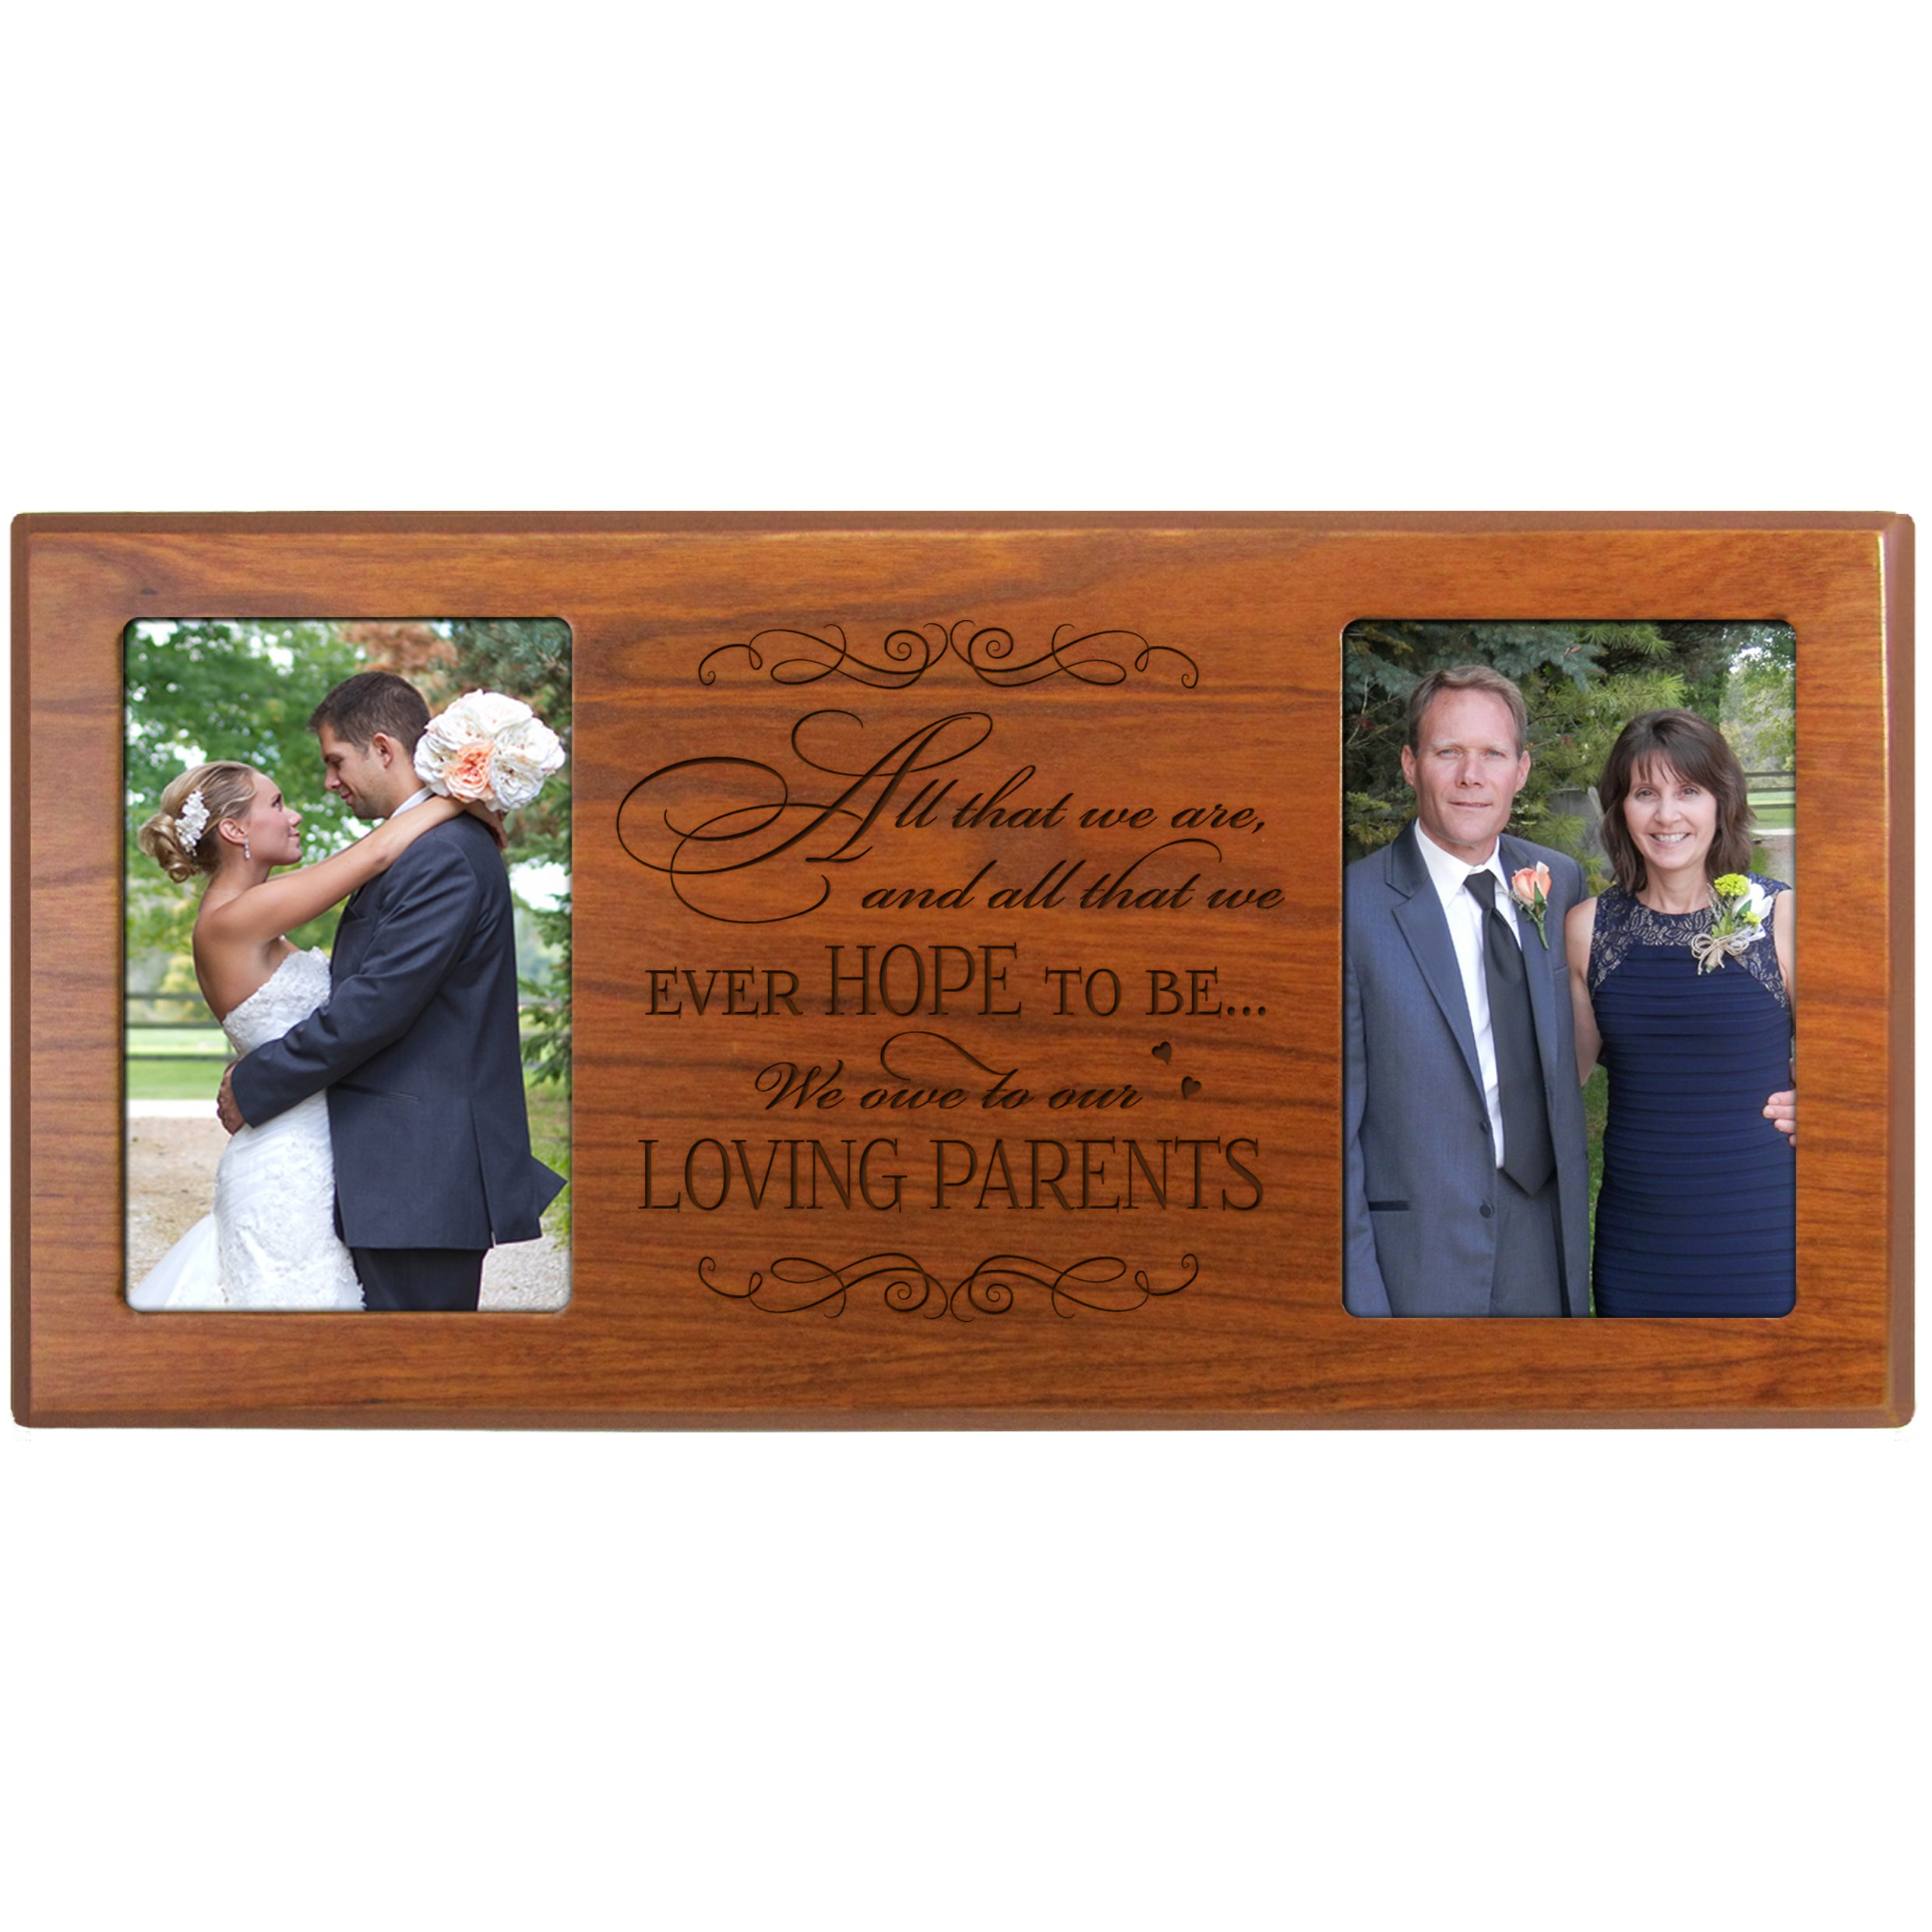 Parent Wedding Gifts Wedding Picture Frame Wedding Gift for Parents Mom and Dad Thank You Gifts 16'' W X 8'' H '' Exclusively From LifeSong Milestones (Cherry)s